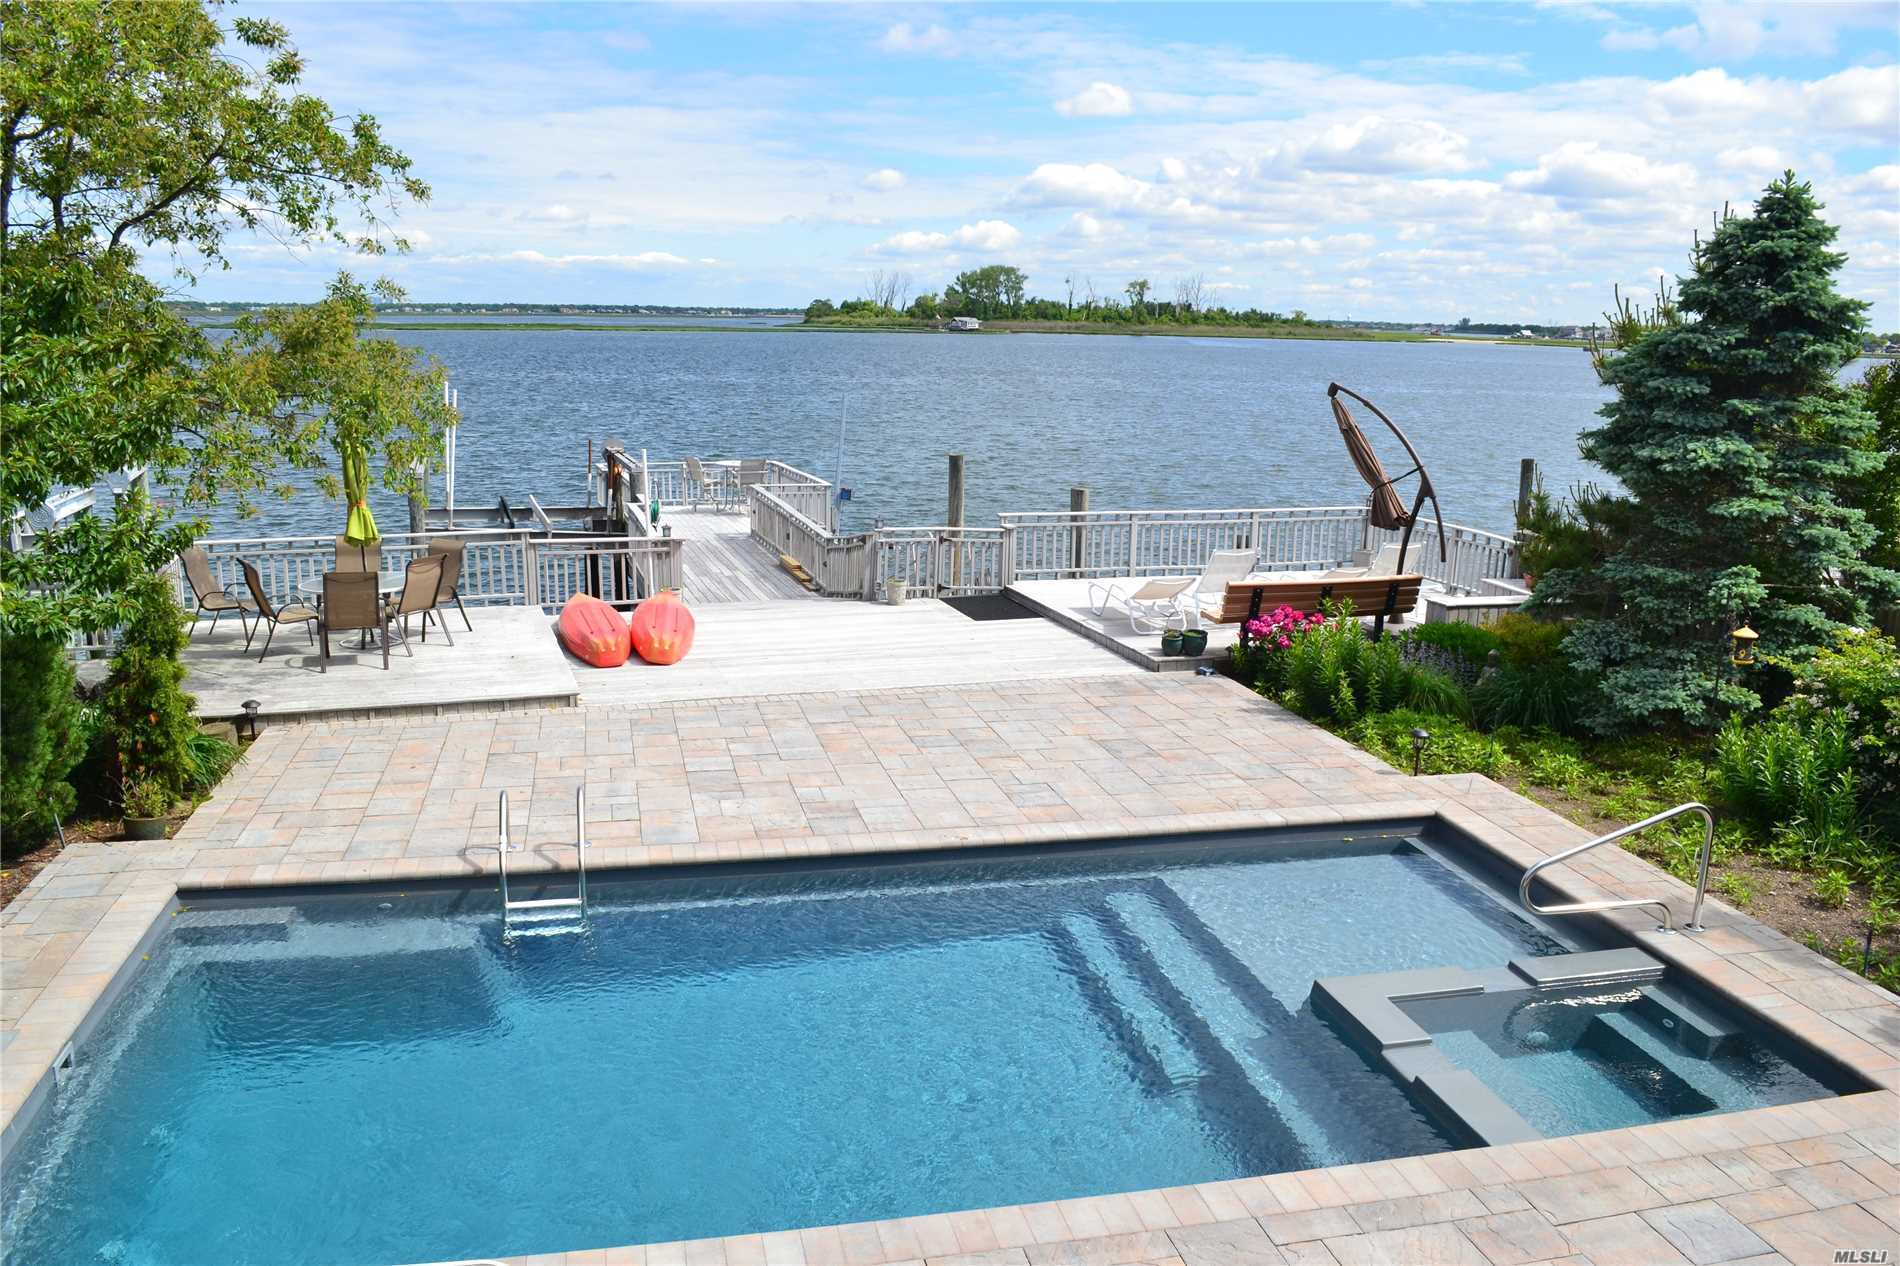 521 W Bay Dr - Long Beach, New York